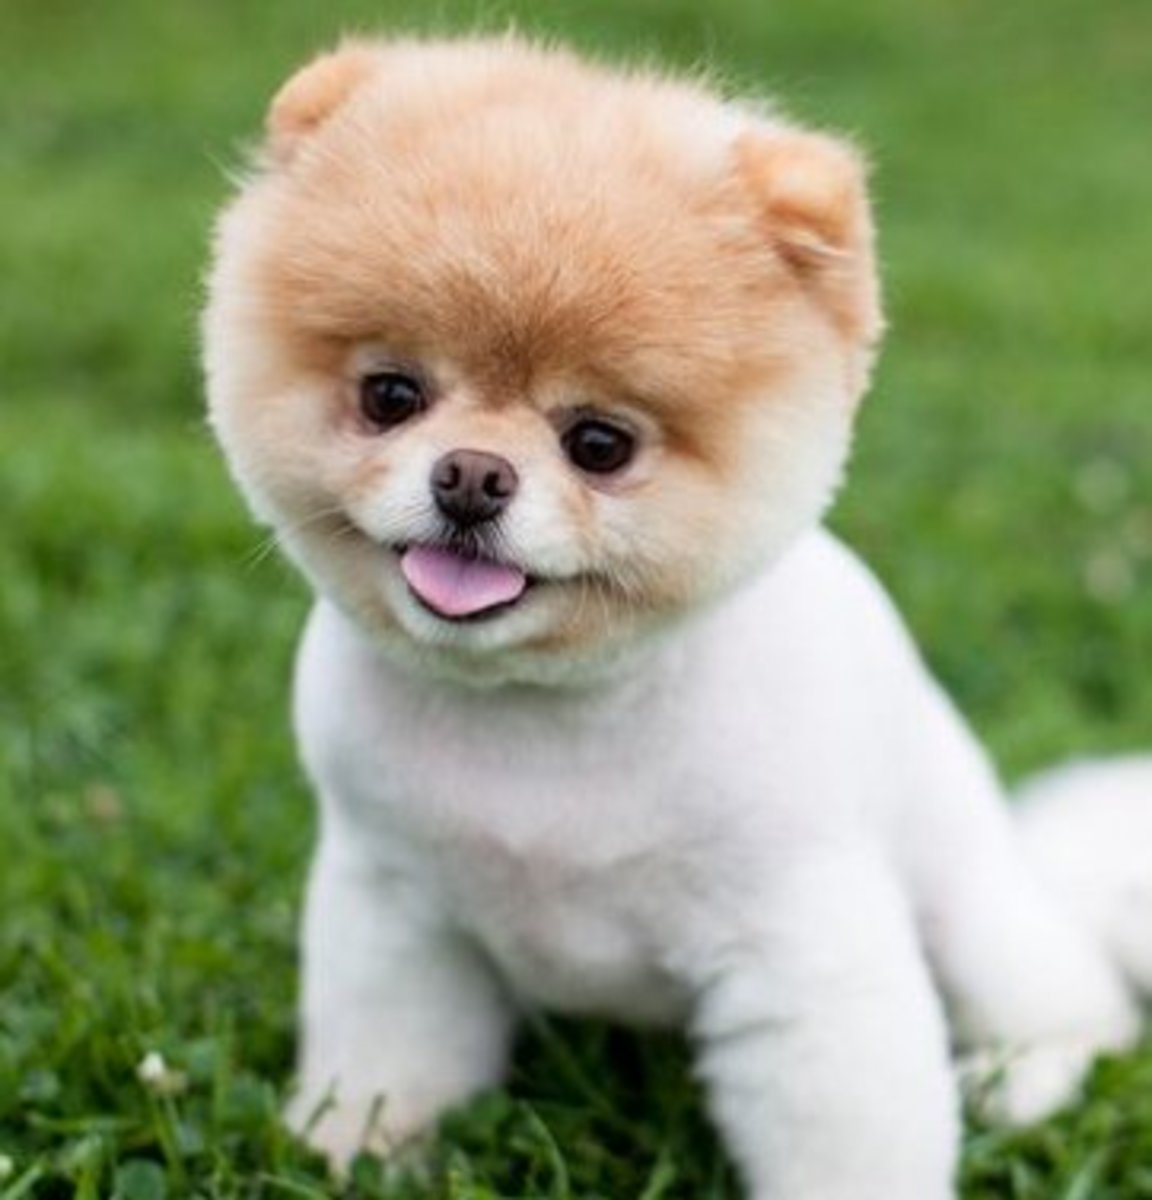 What Kind of Breed is Boo, the Cutest Dog in the World?